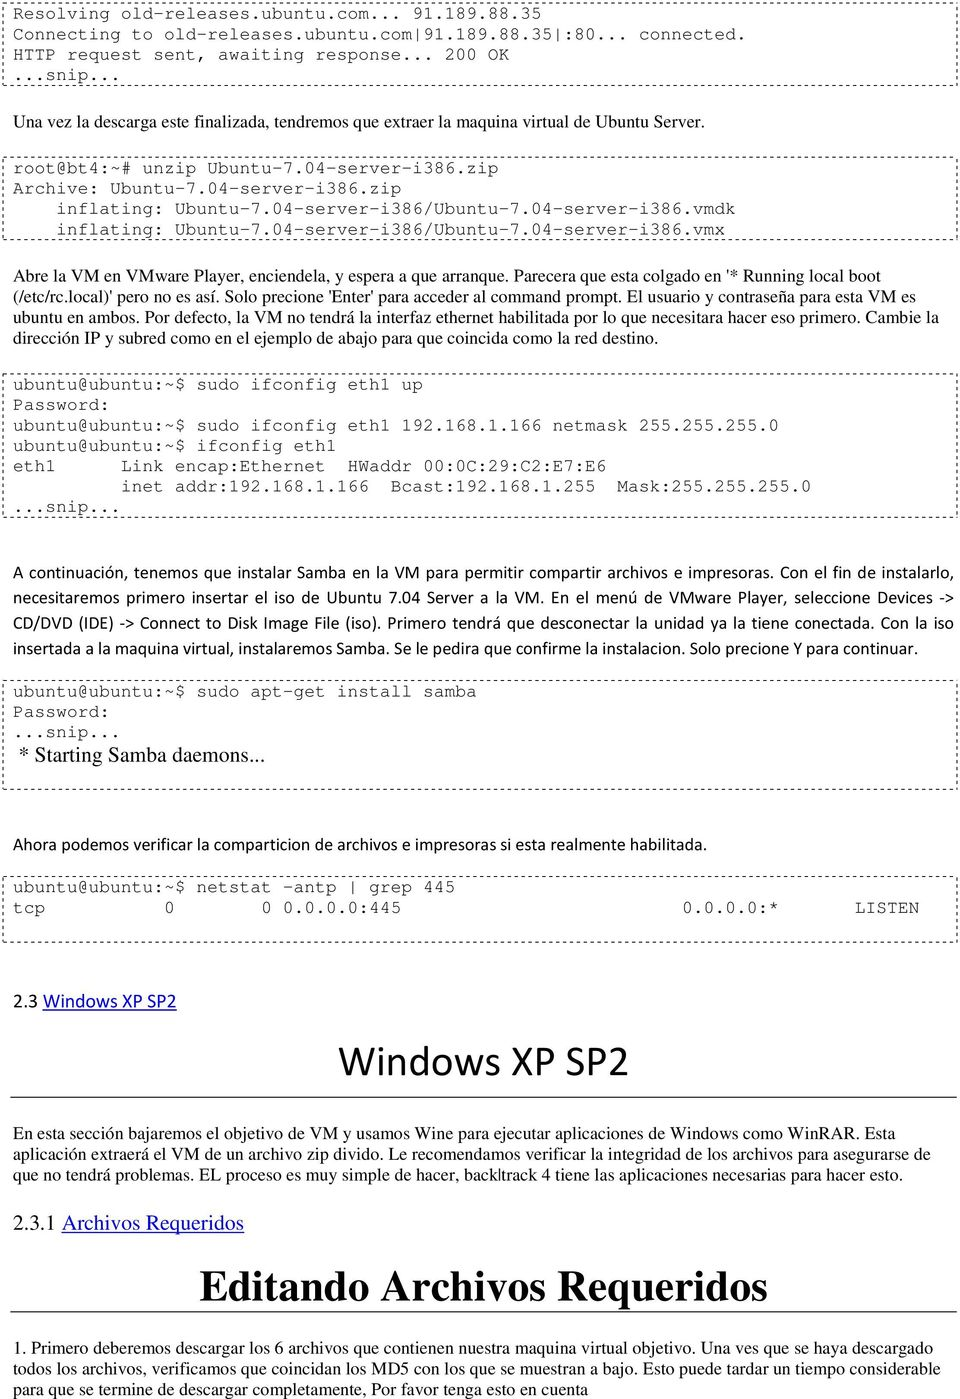 04-server-i386/Ubuntu-7.04-server-i386.vmdk inflating: Ubuntu-7.04-server-i386/Ubuntu-7.04-server-i386.vmx Abre la VM en VMware Player, enciendela, y espera a que arranque.